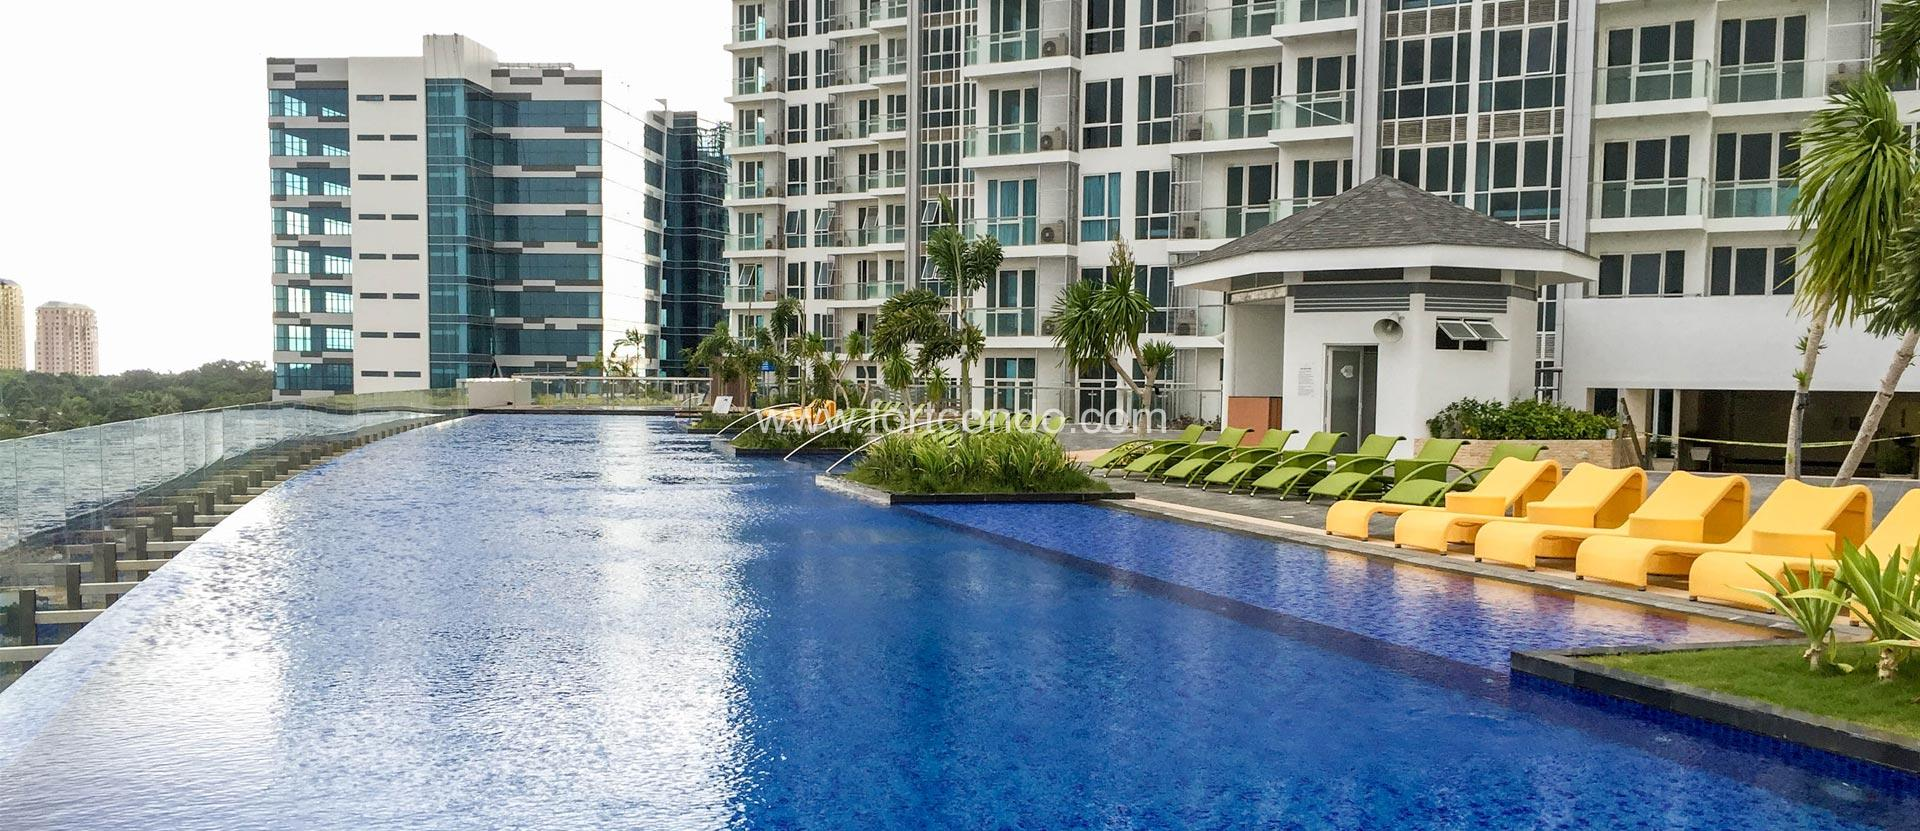 pool-amenties-8-newtown-boulevard-cebu-condos-for-sale